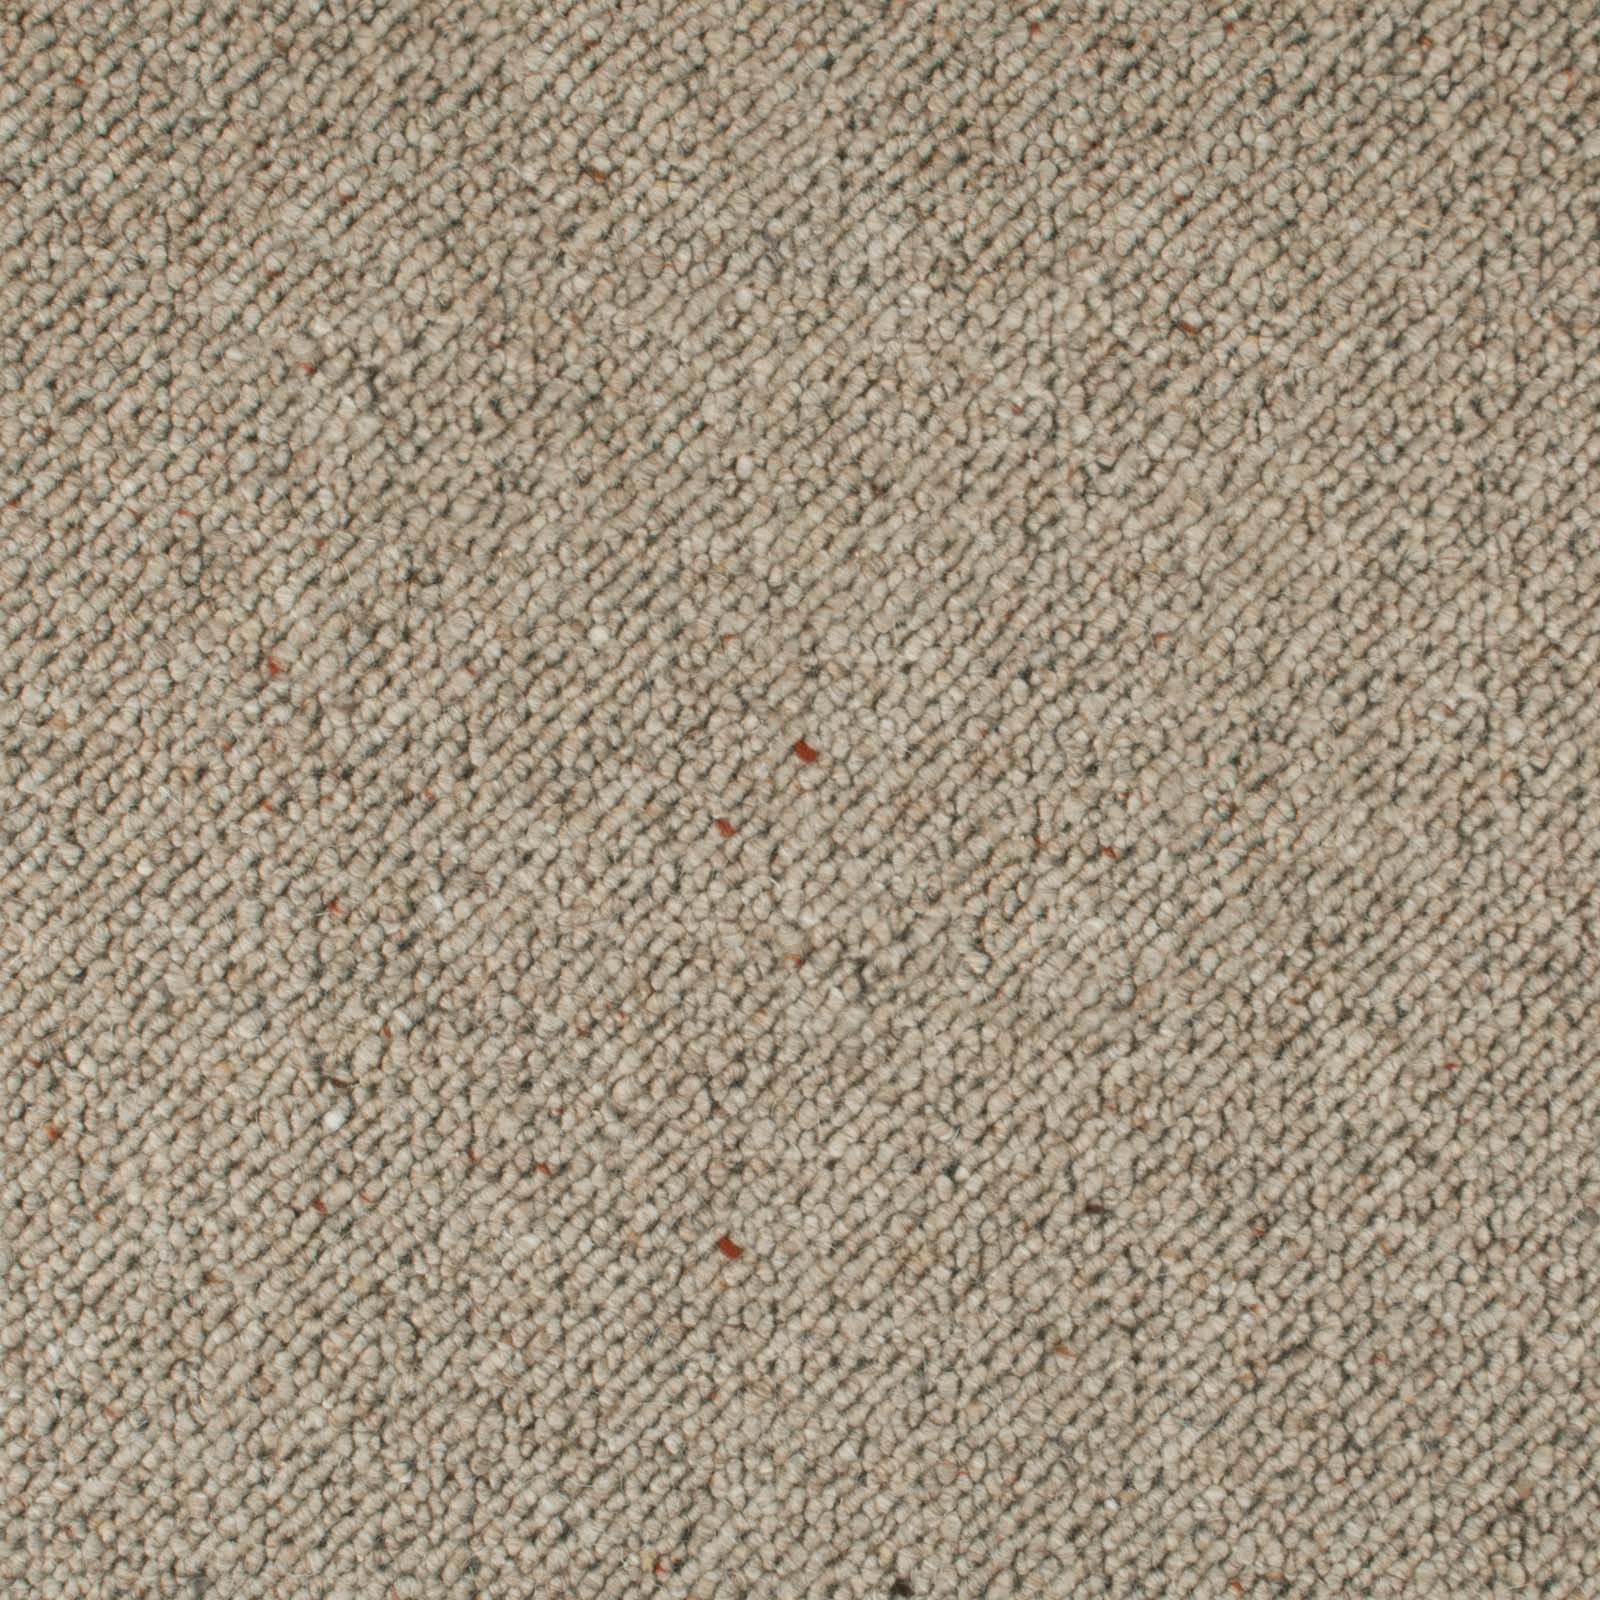 Raw Linen Corsa Berber Deluxe Wool Carpet - Far